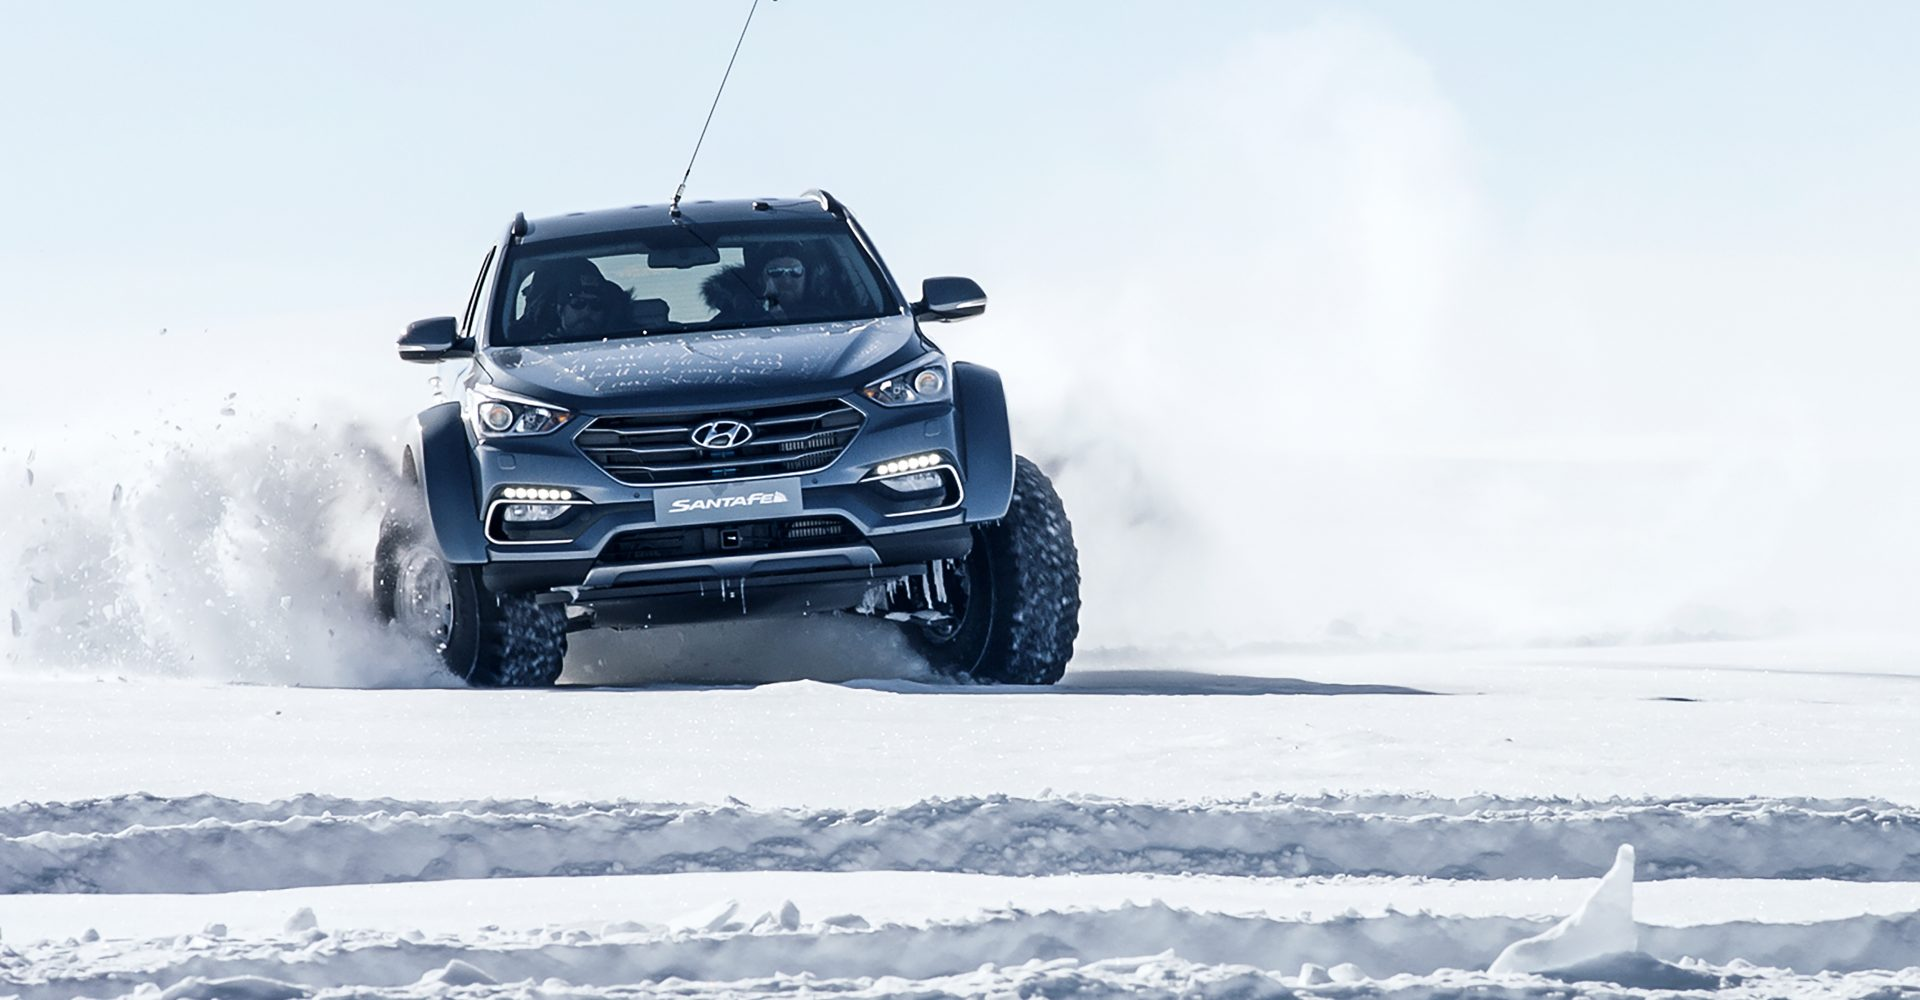 In The Footsteps Of Shackleton – A Hyundai Santa Fe Tackles The Antarctic